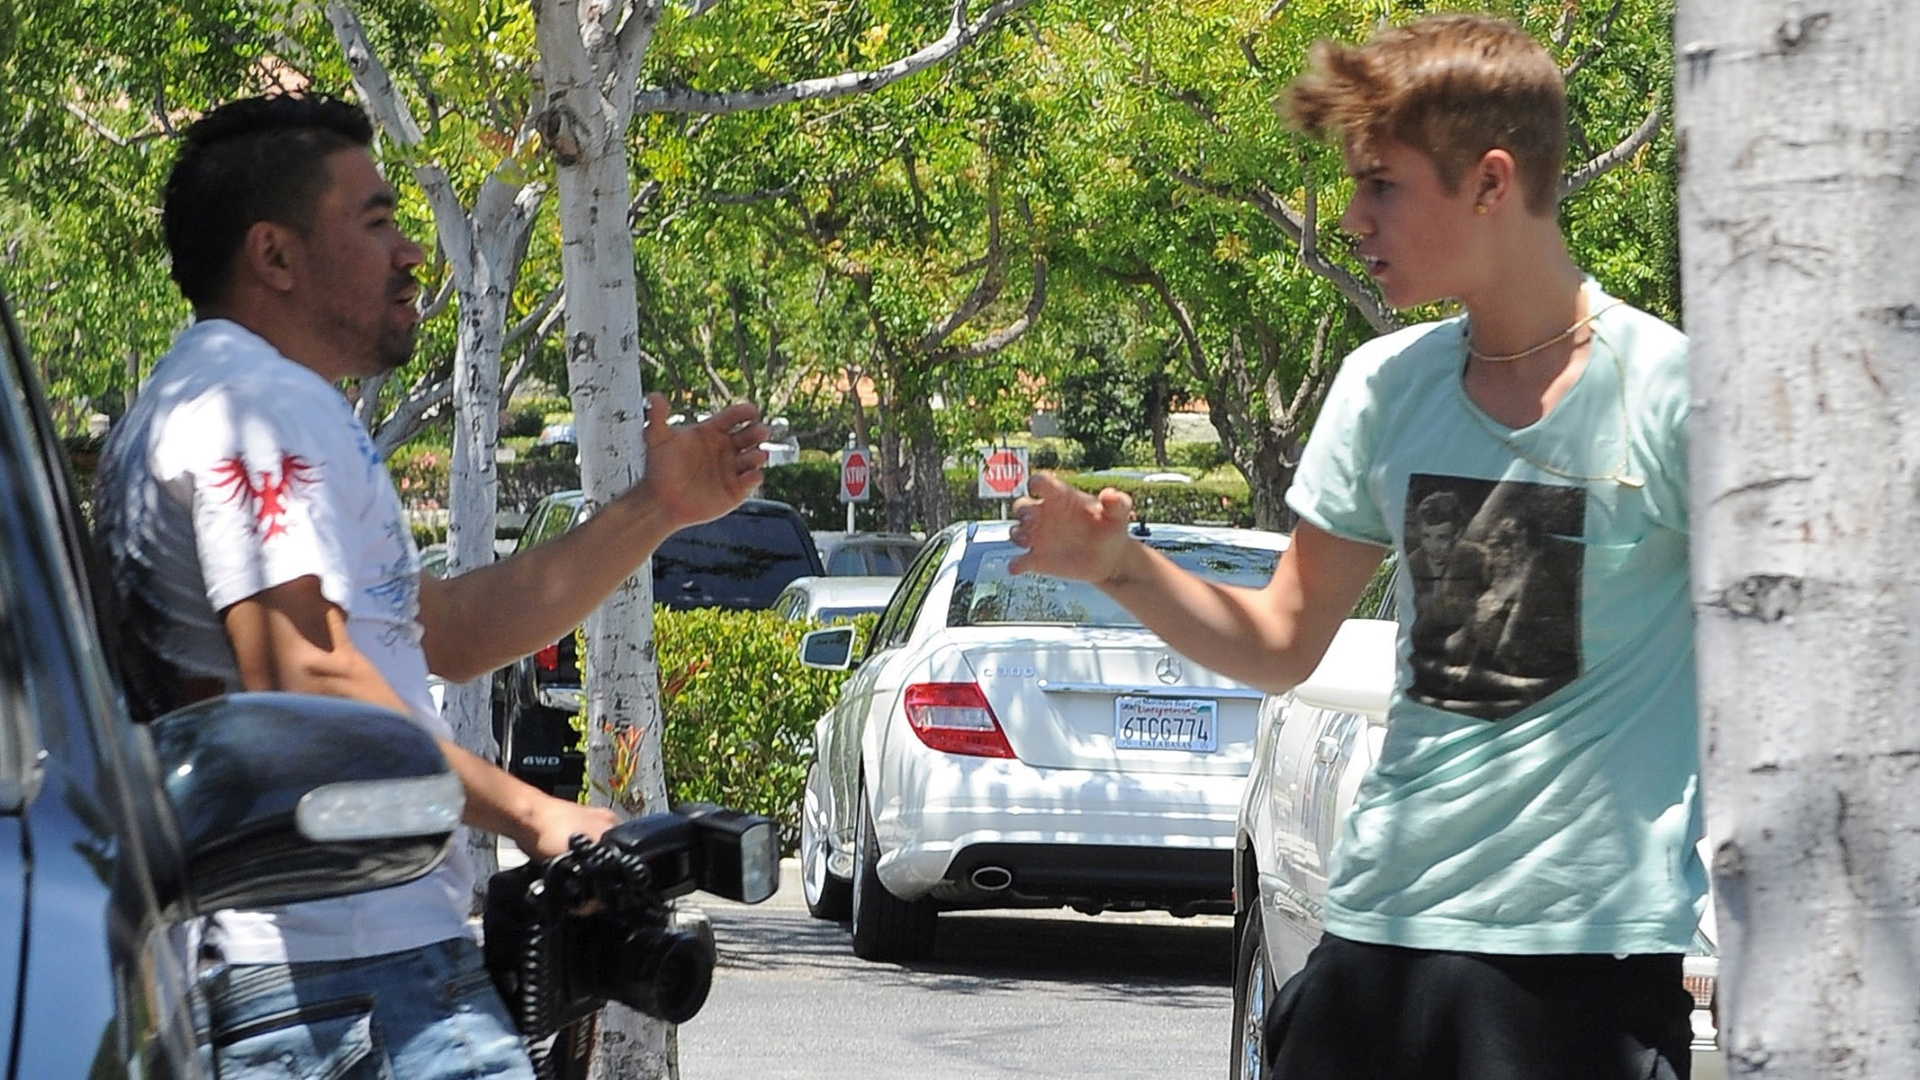 Justin Bieber ( dir.) discute com paparazzo em frente a shopping center de Los Angeles (27/5/12)